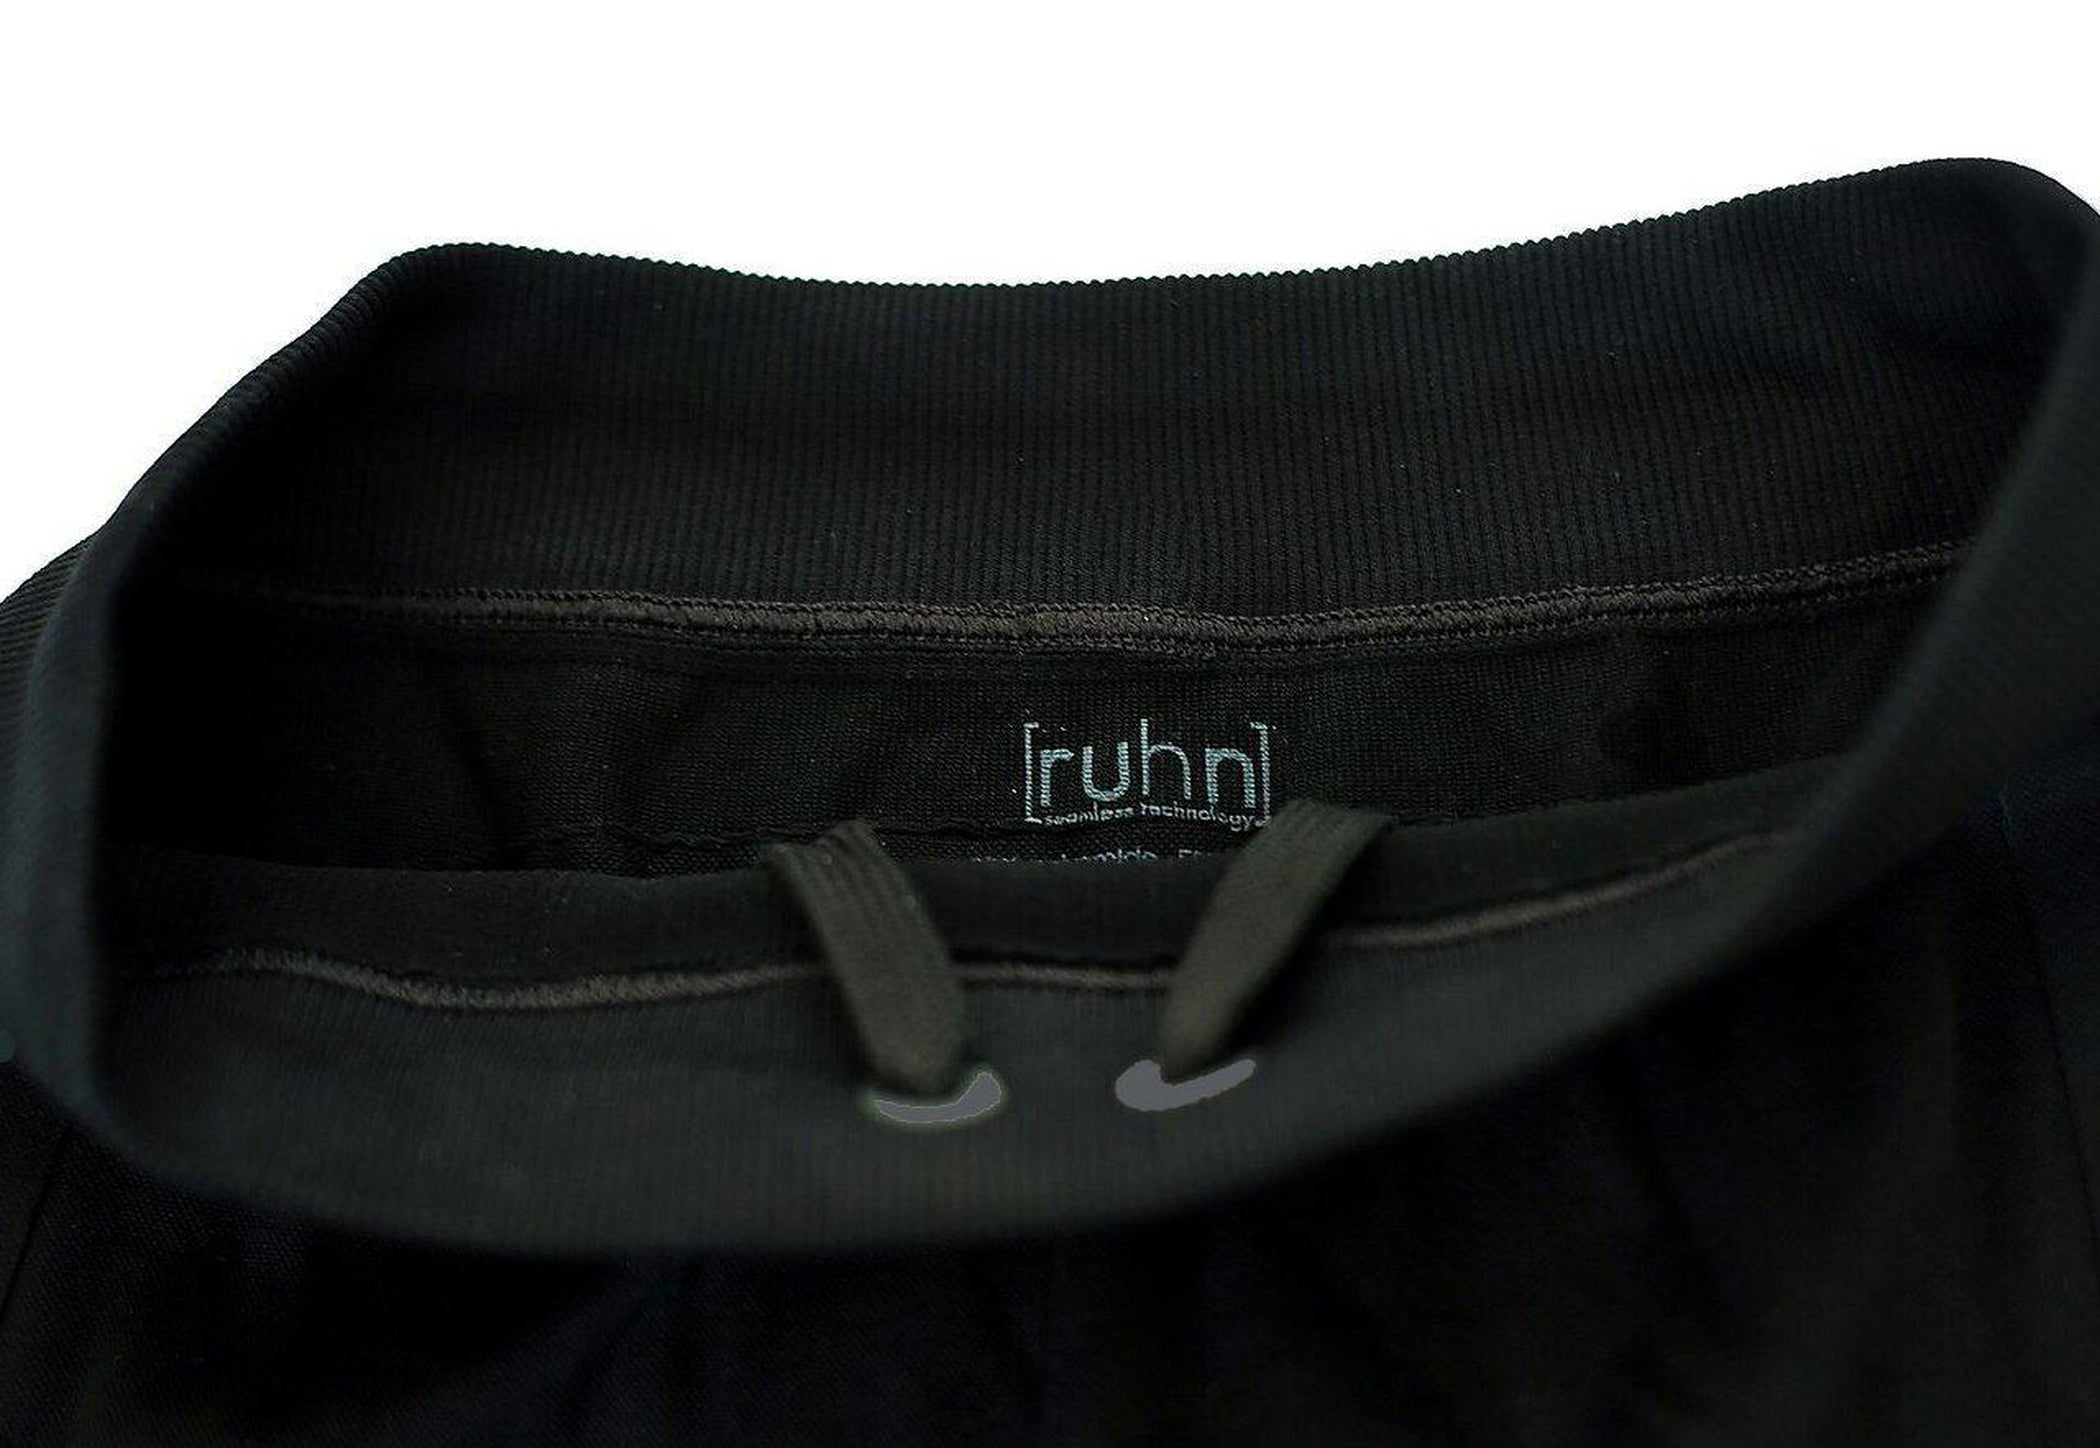 Black compression pant with patented fully seamless front, pocket. Drawstring.